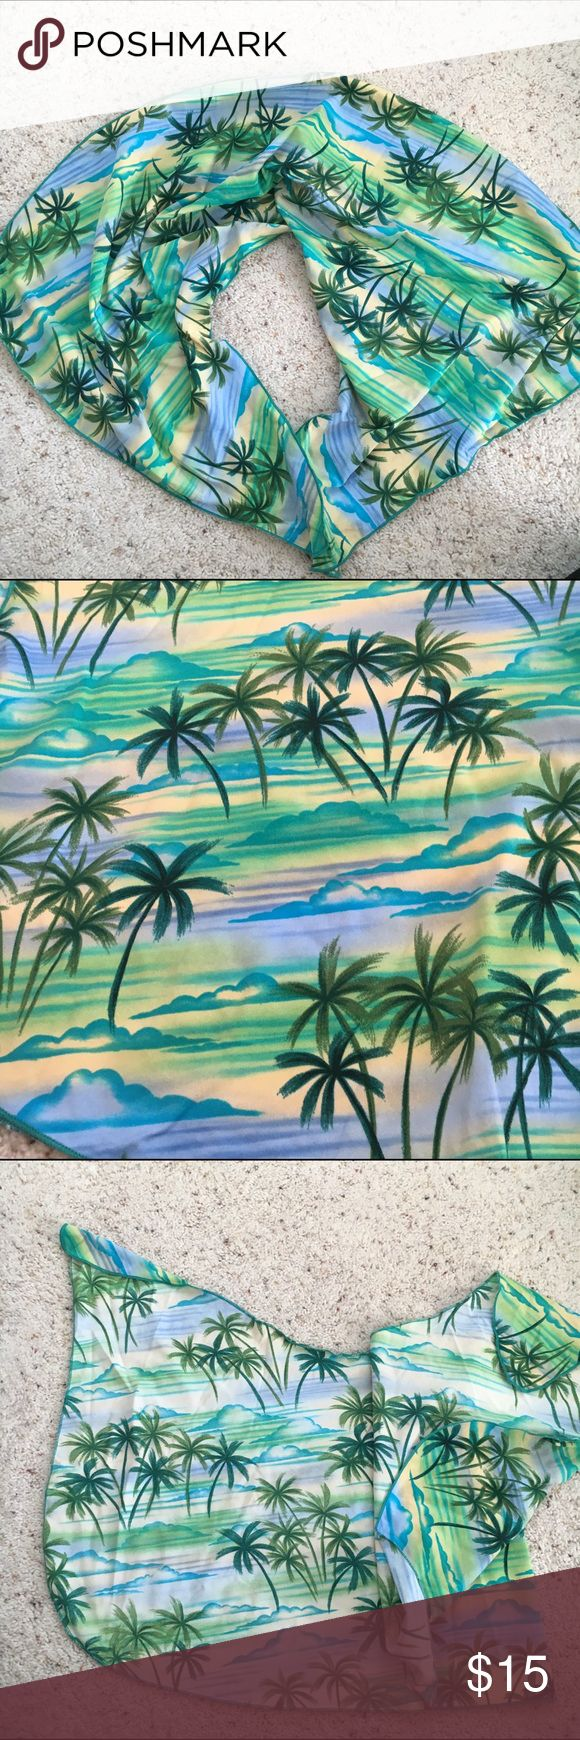 Raisins Sarong Swim Cover Up Skirt Palm Trees Stretchy cover up from Raisins. Sarong style mini skirt. Super cute, comfy and made of a bathing suit material to keep you dry. Green blue and yellow palm tree beach print. Worn only ONCE! Raisins Swim Sarongs